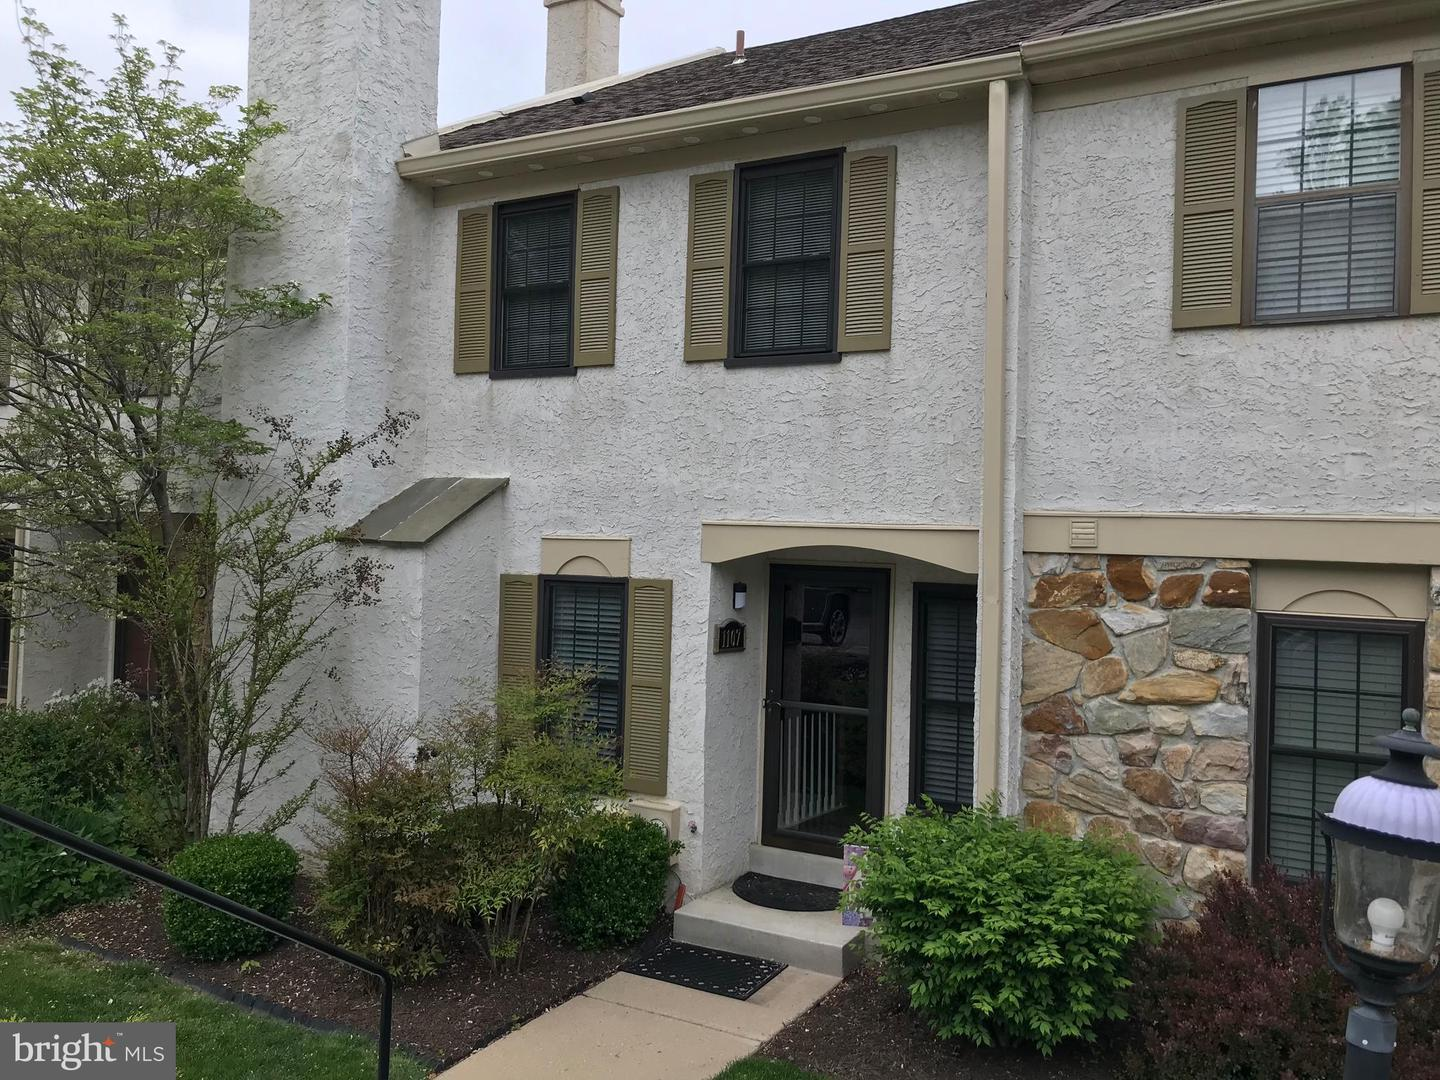 1107 Wellesley Terrace West Chester , PA 19382